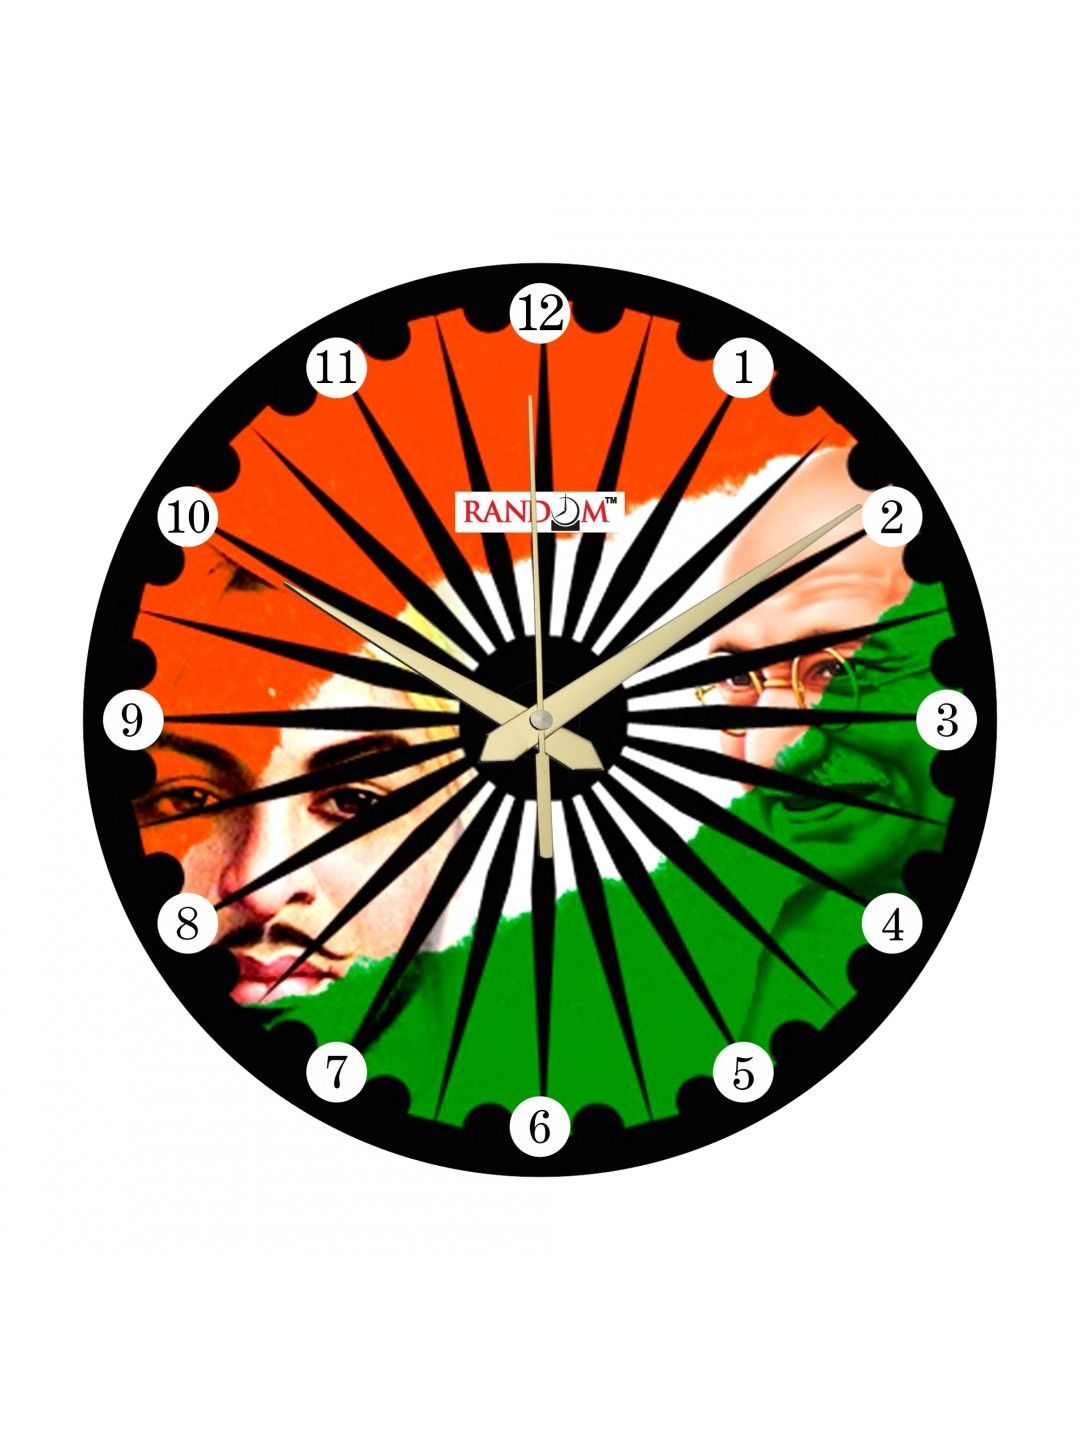 Azadi ka tiranga analog wall clock buy online presents print azadi ka tiranga analog wall clock buy online presents print series designer wall clocks with patriotrism amipublicfo Image collections